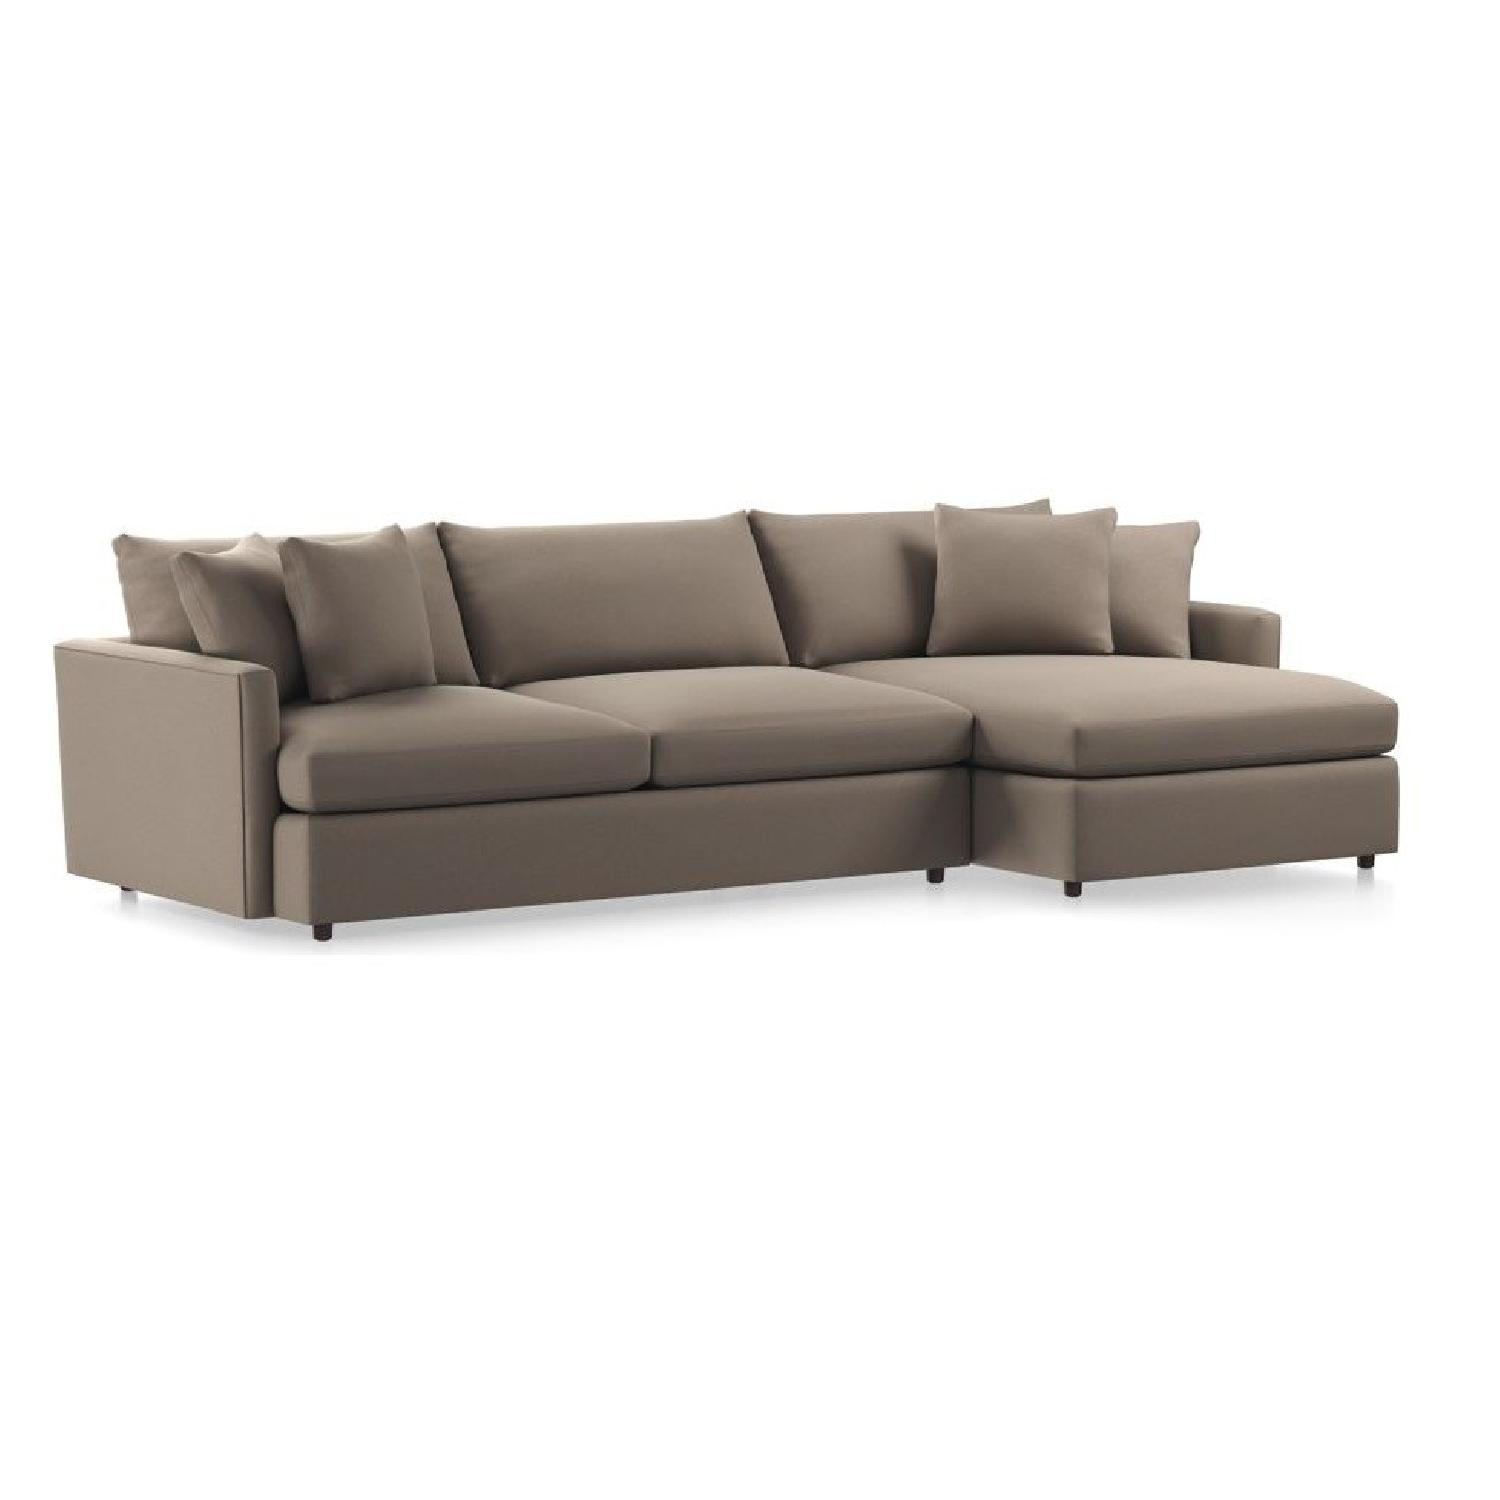 Crate & Barrel Lounge Ii Sectional Sofa